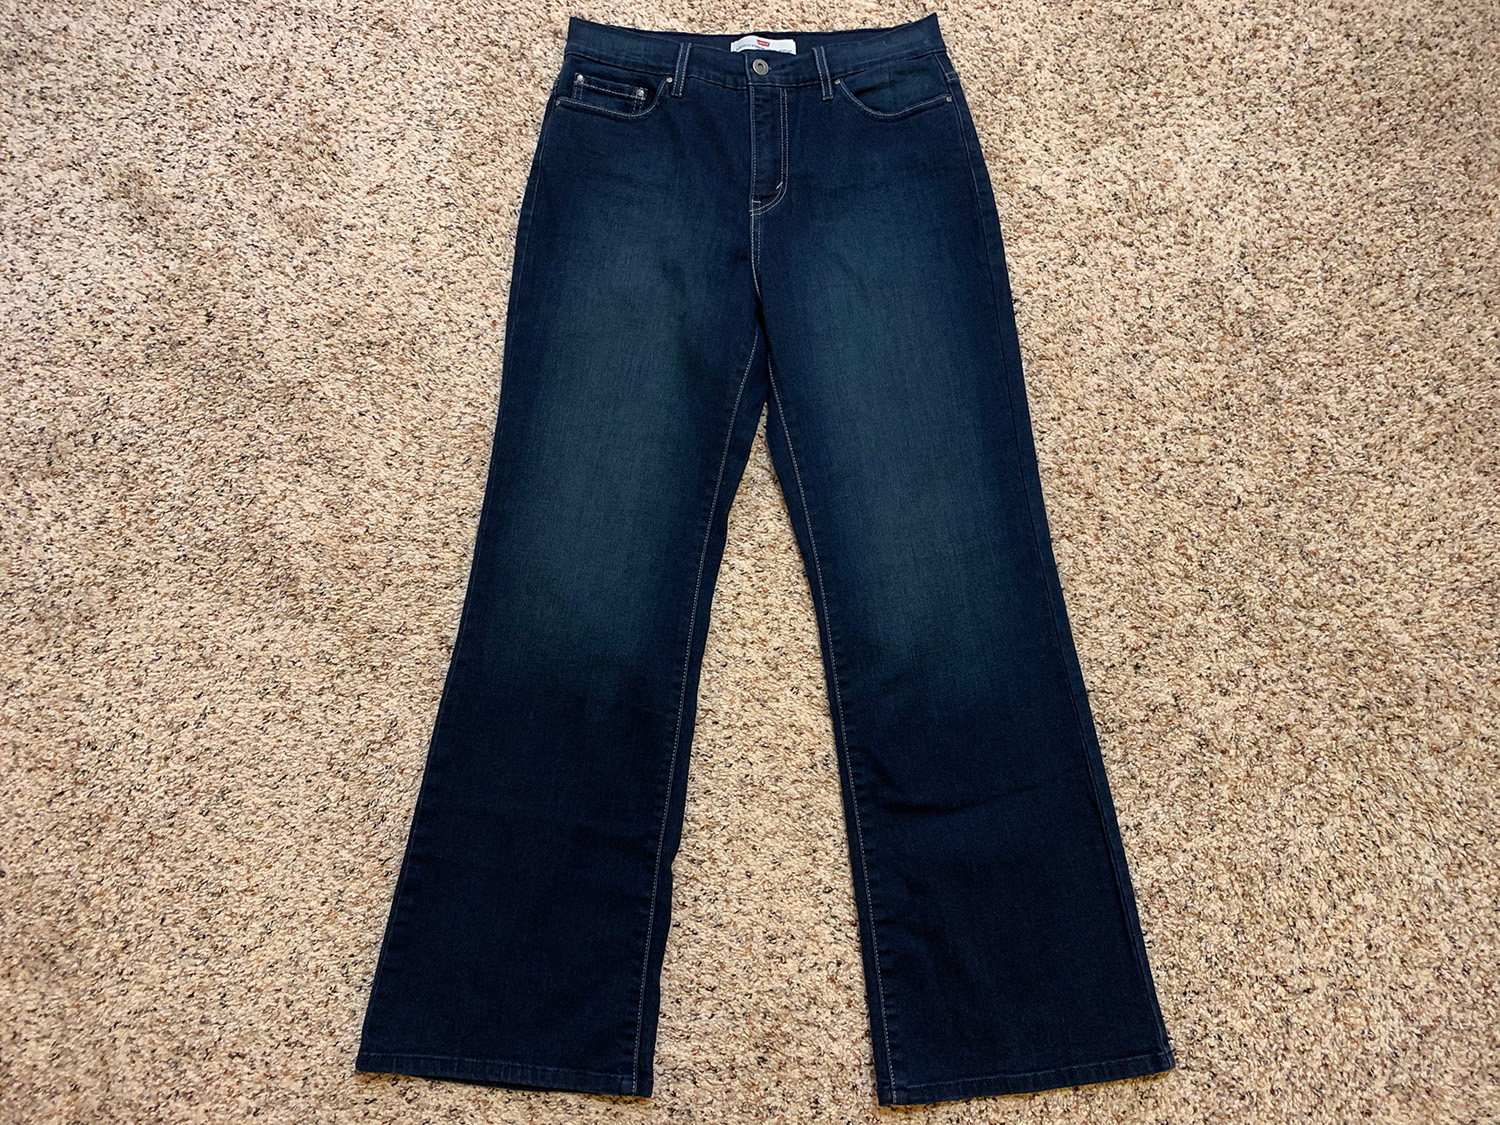 Levis Womens Perfectly Slimming 512 Bootcut Jeans Size 12S